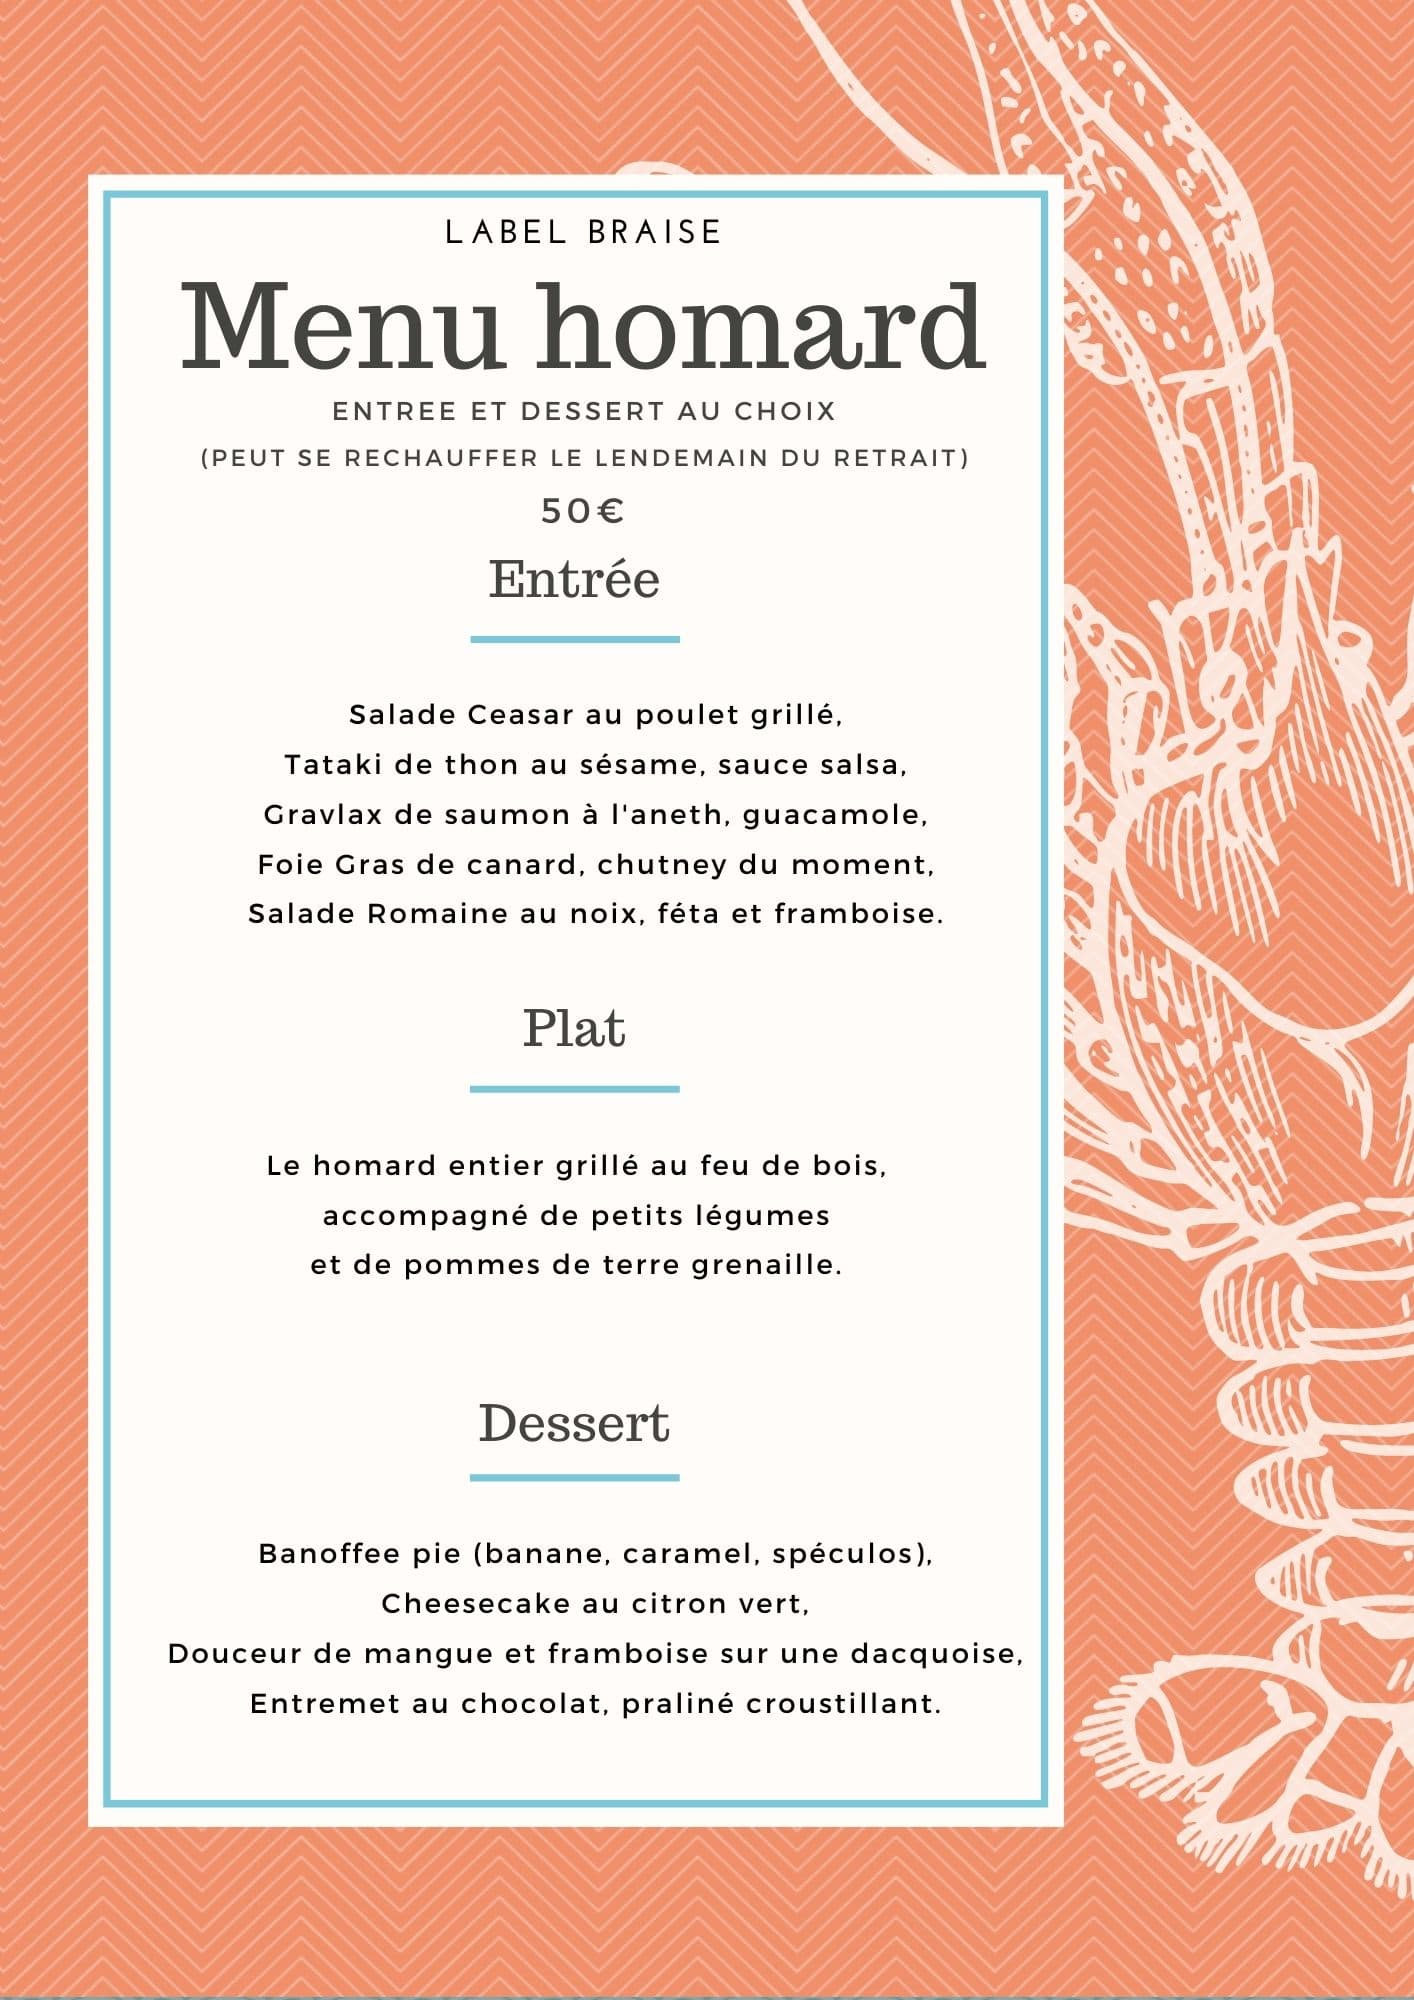 Menu HOMARD Label Braise